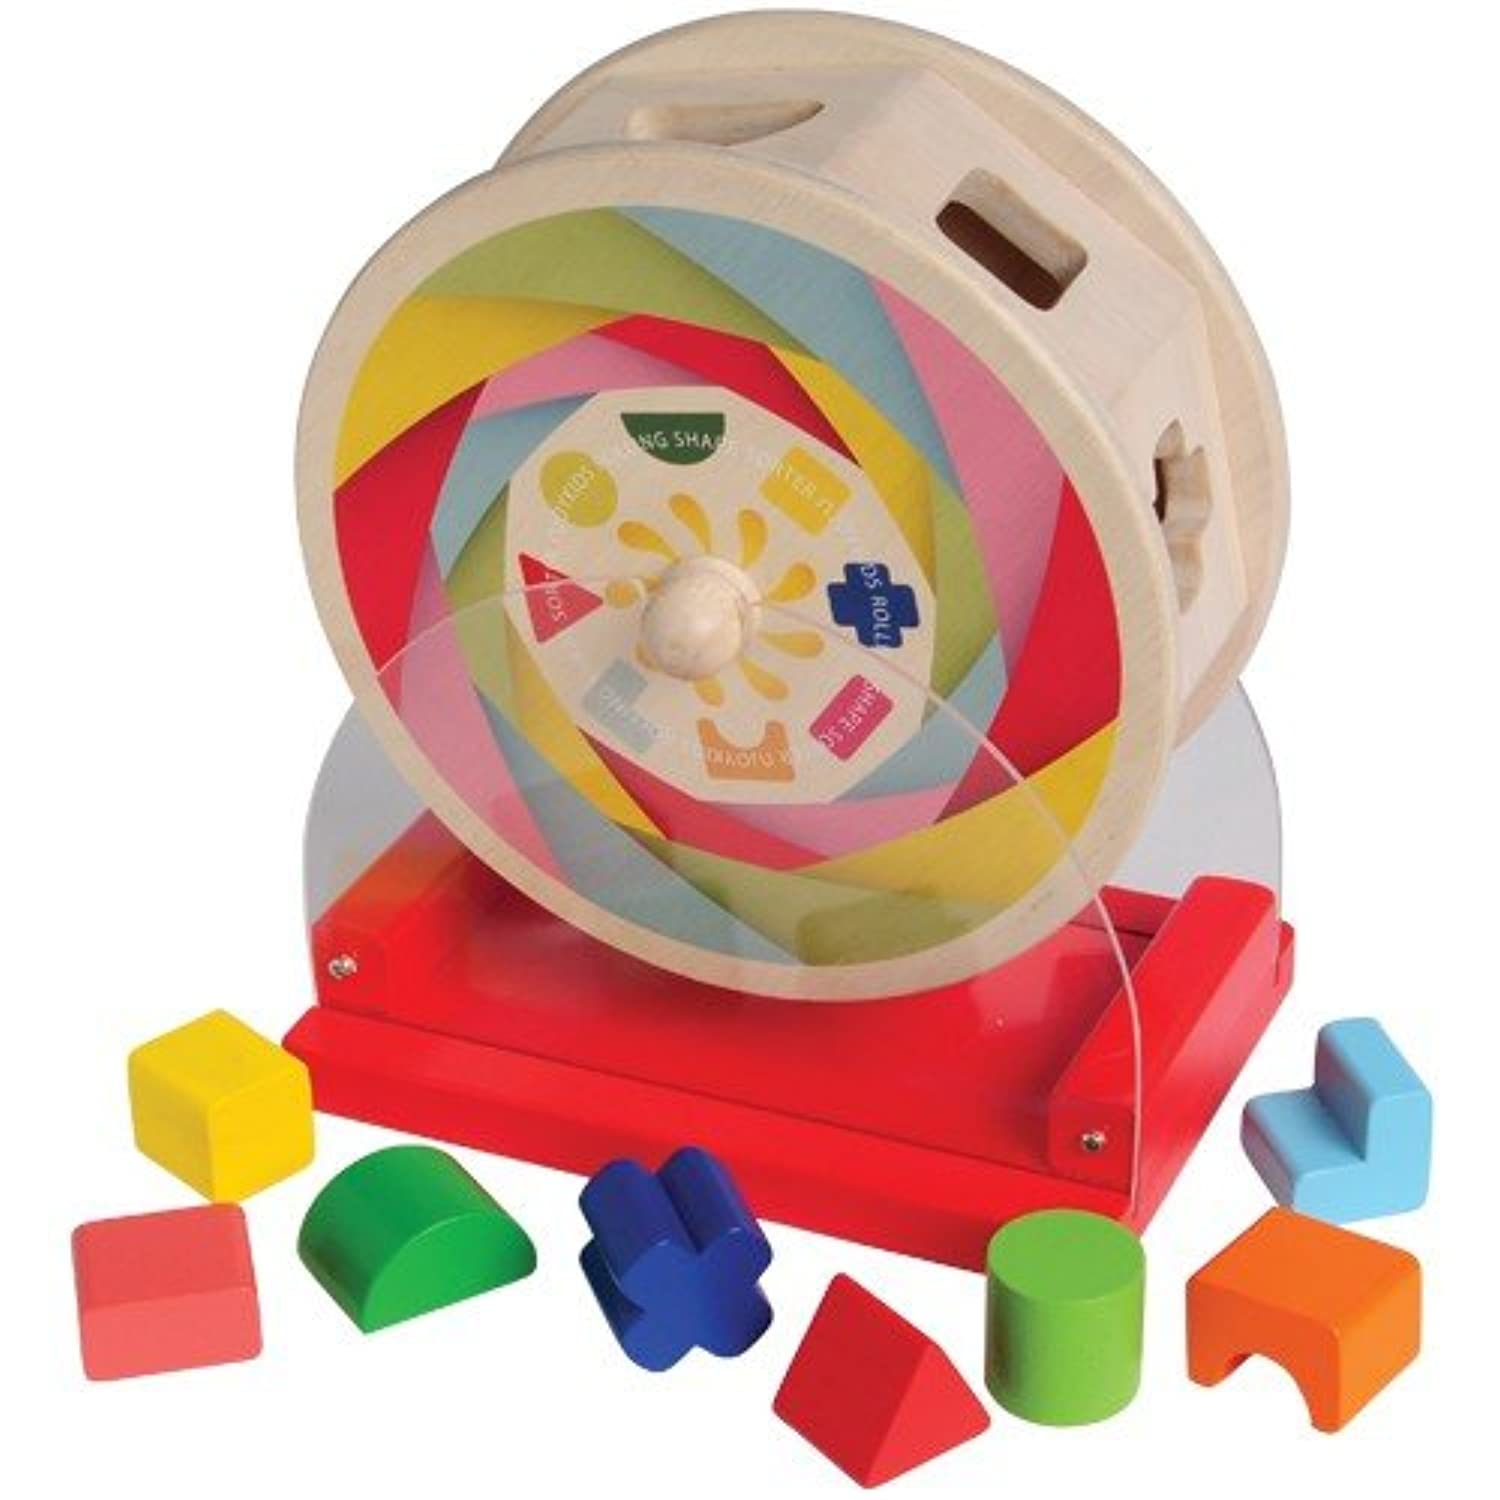 Rolling Shape Sorter with Eight Different Shaped Holes